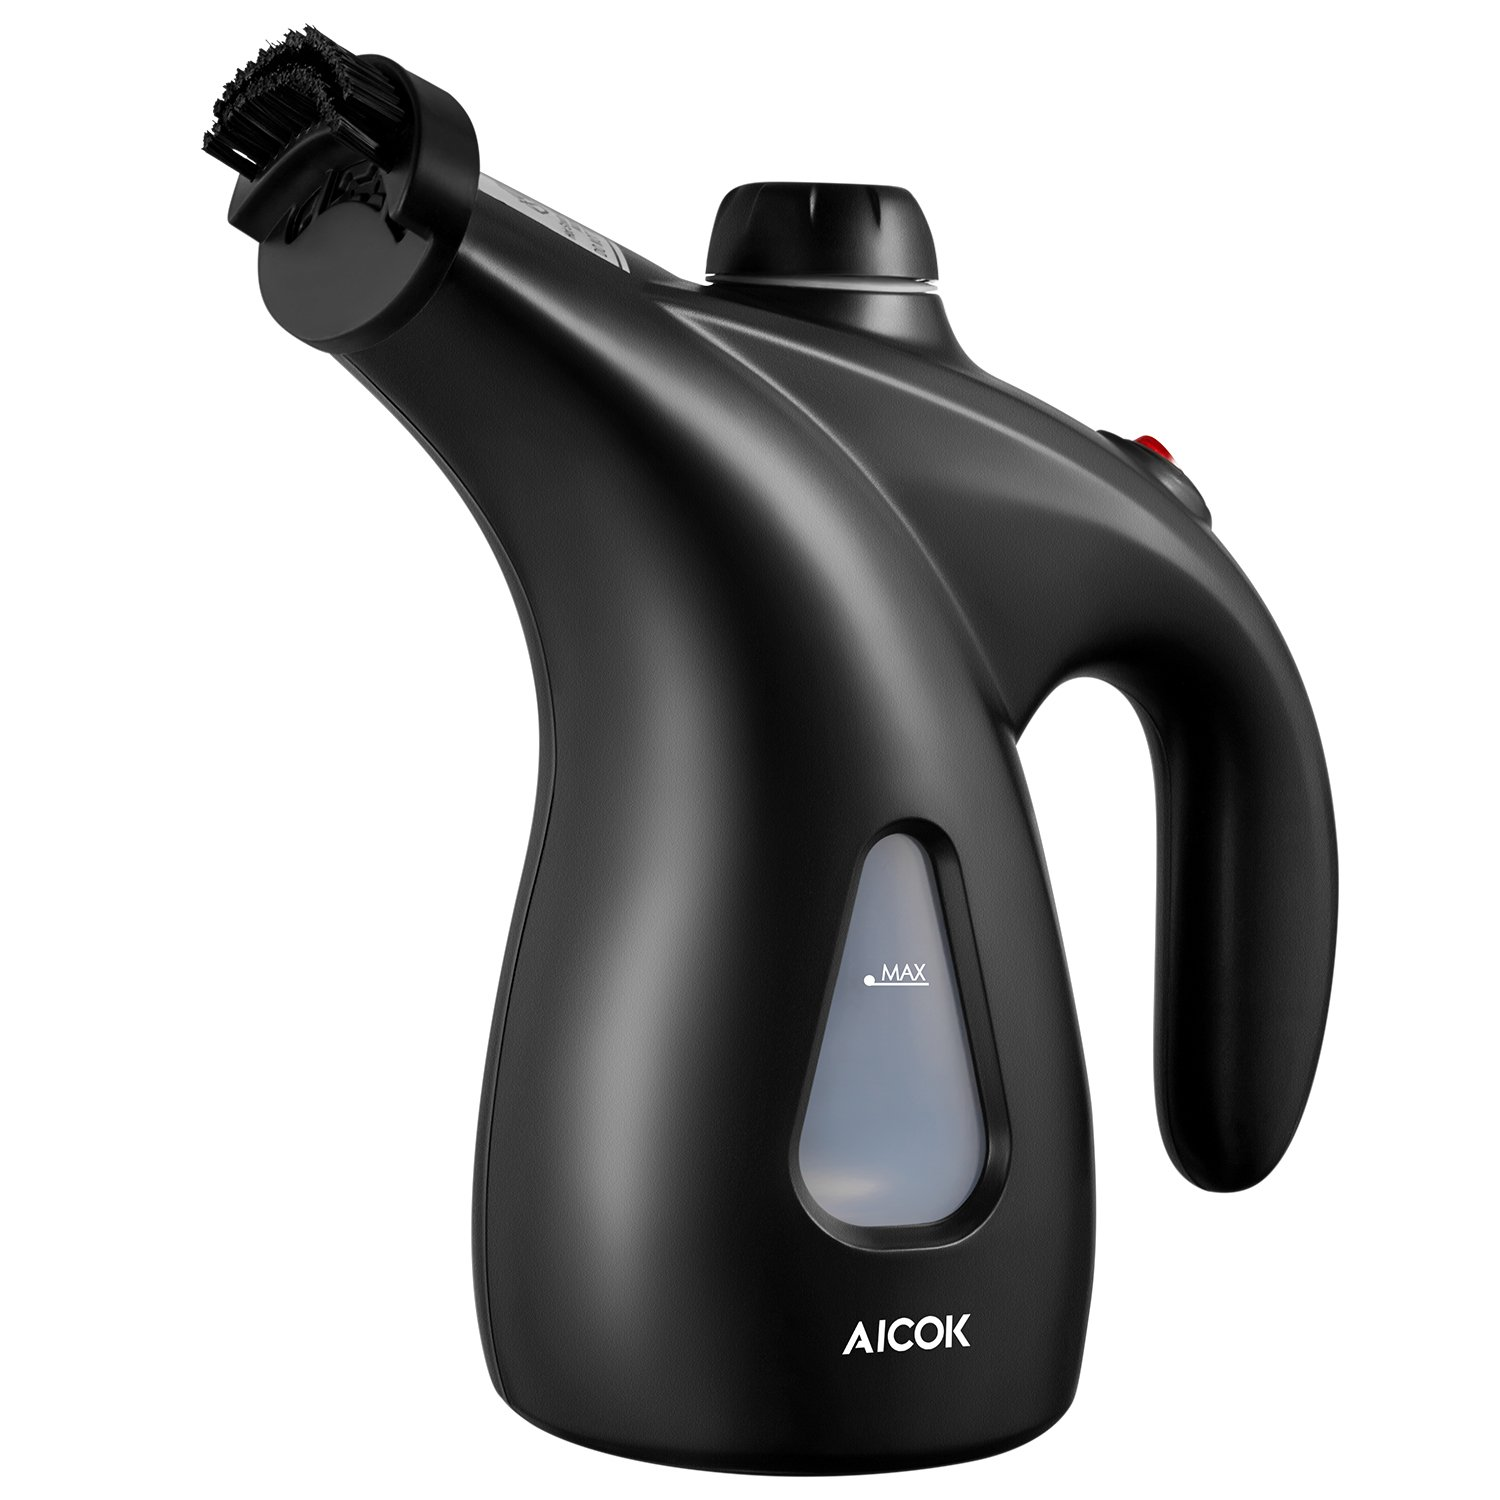 Aicok Garment Steamer, 200ml Portable Clothes Steamer, 900W Powerful Handheld Steamer, Fast Heat-up Clothing Steamer with Brush & Pouch for Home and Travel, Black